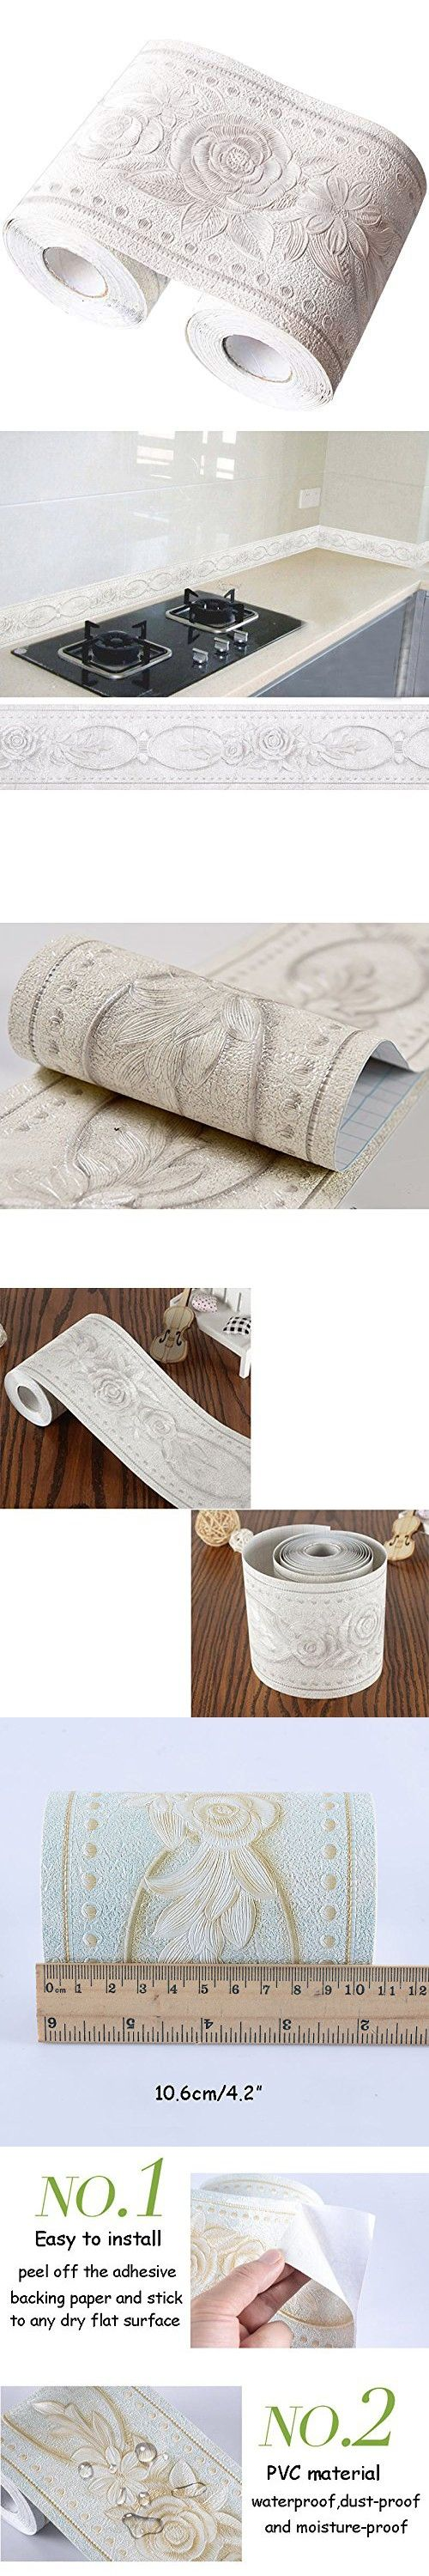 "Creation Core 4.2x196.8"" Waterproof Wallpaper Border 3D"